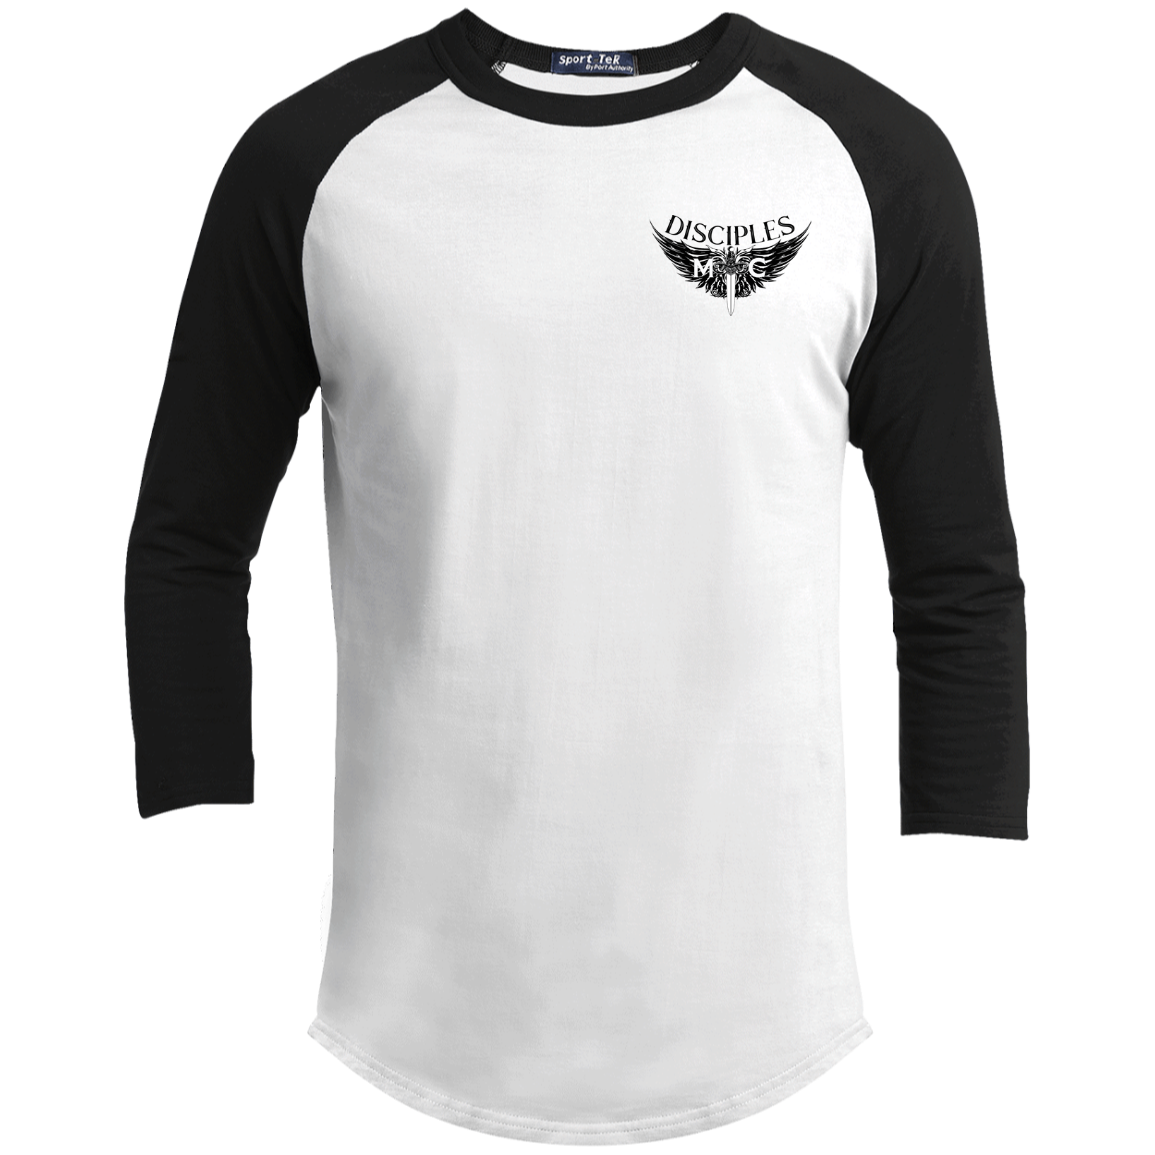 Disciples MC Black FC Sport-Tek Youth Sporty T-Shirt